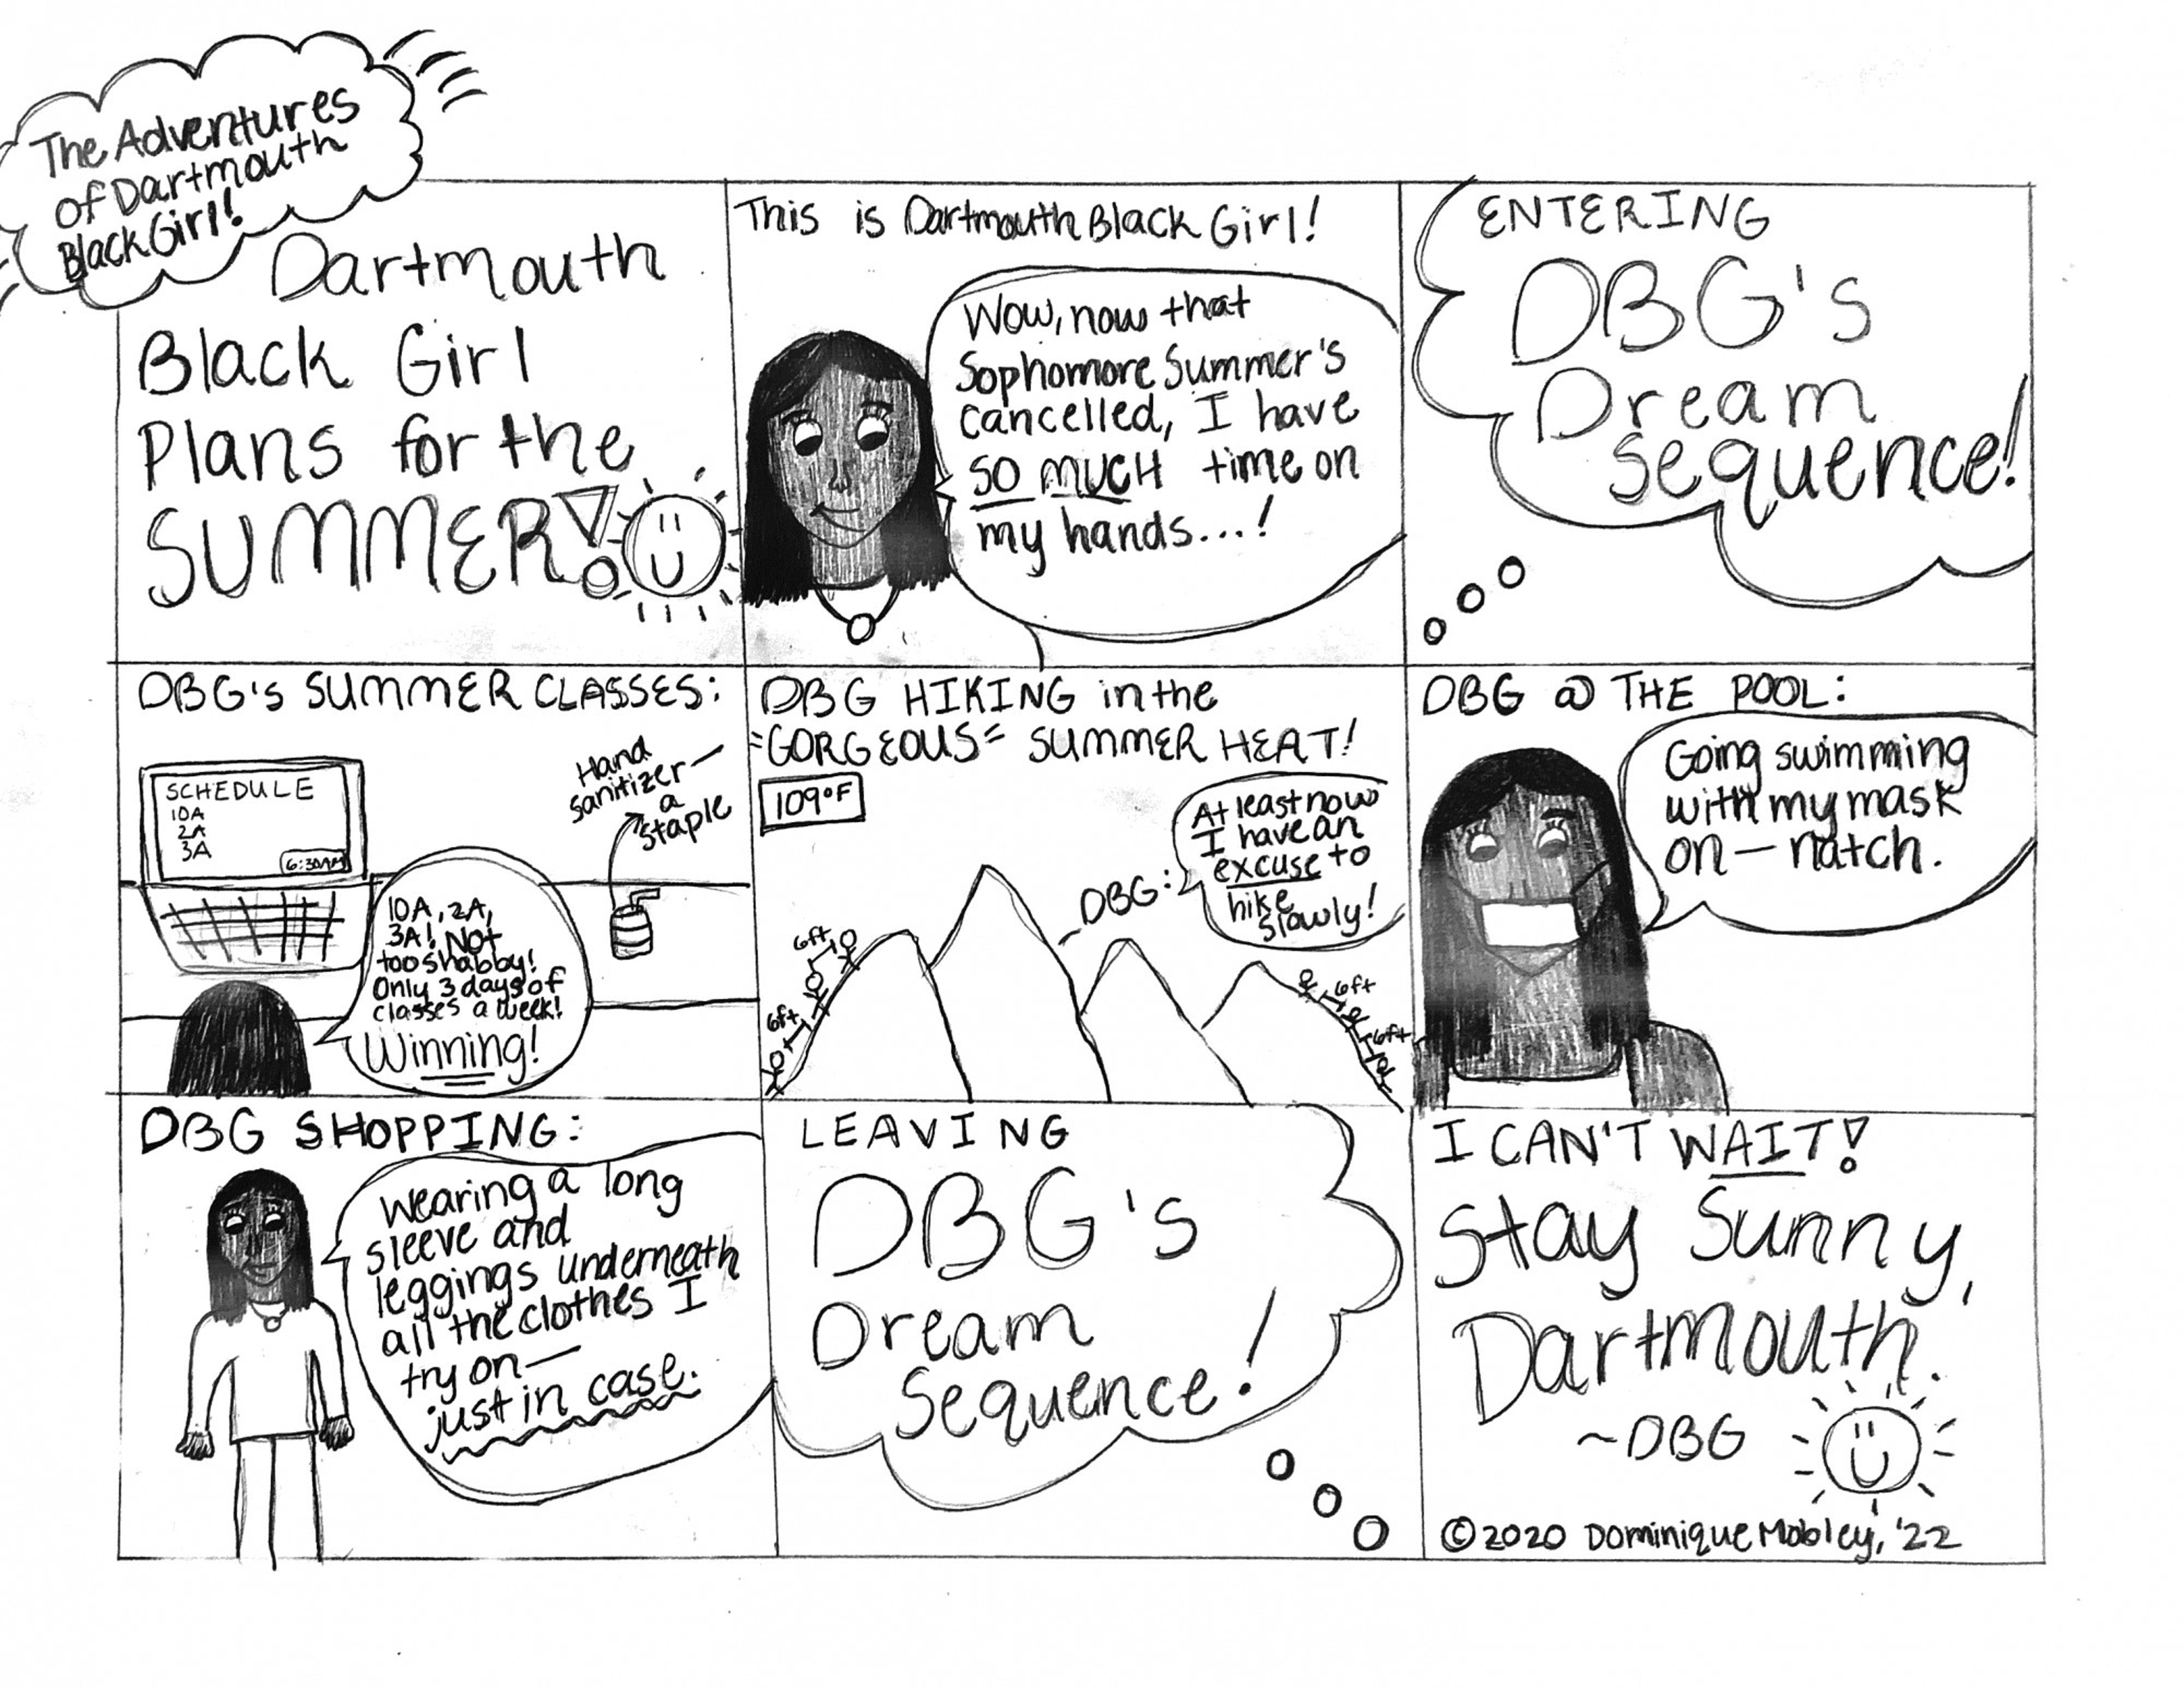 dominique-mobley-cartoon-to-be-published-5-15